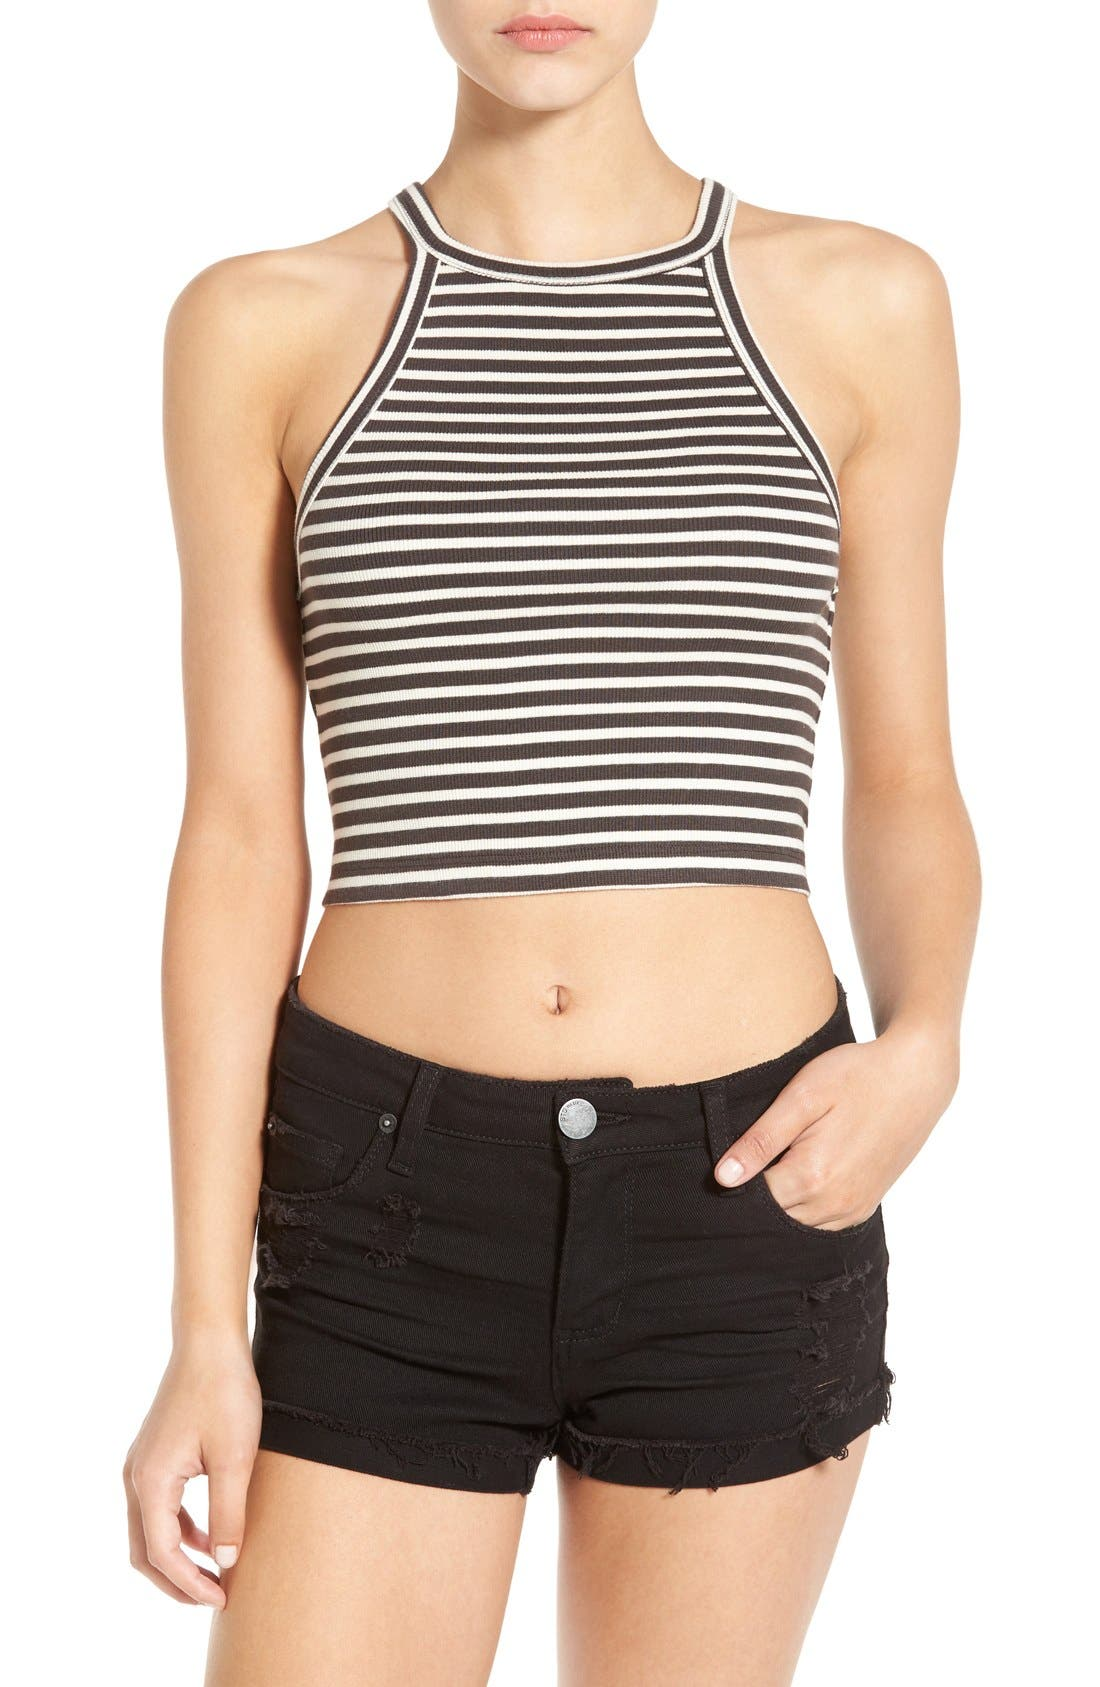 Alternate Image 1 Selected - Billabong 'For Real' Stripe Crop Top